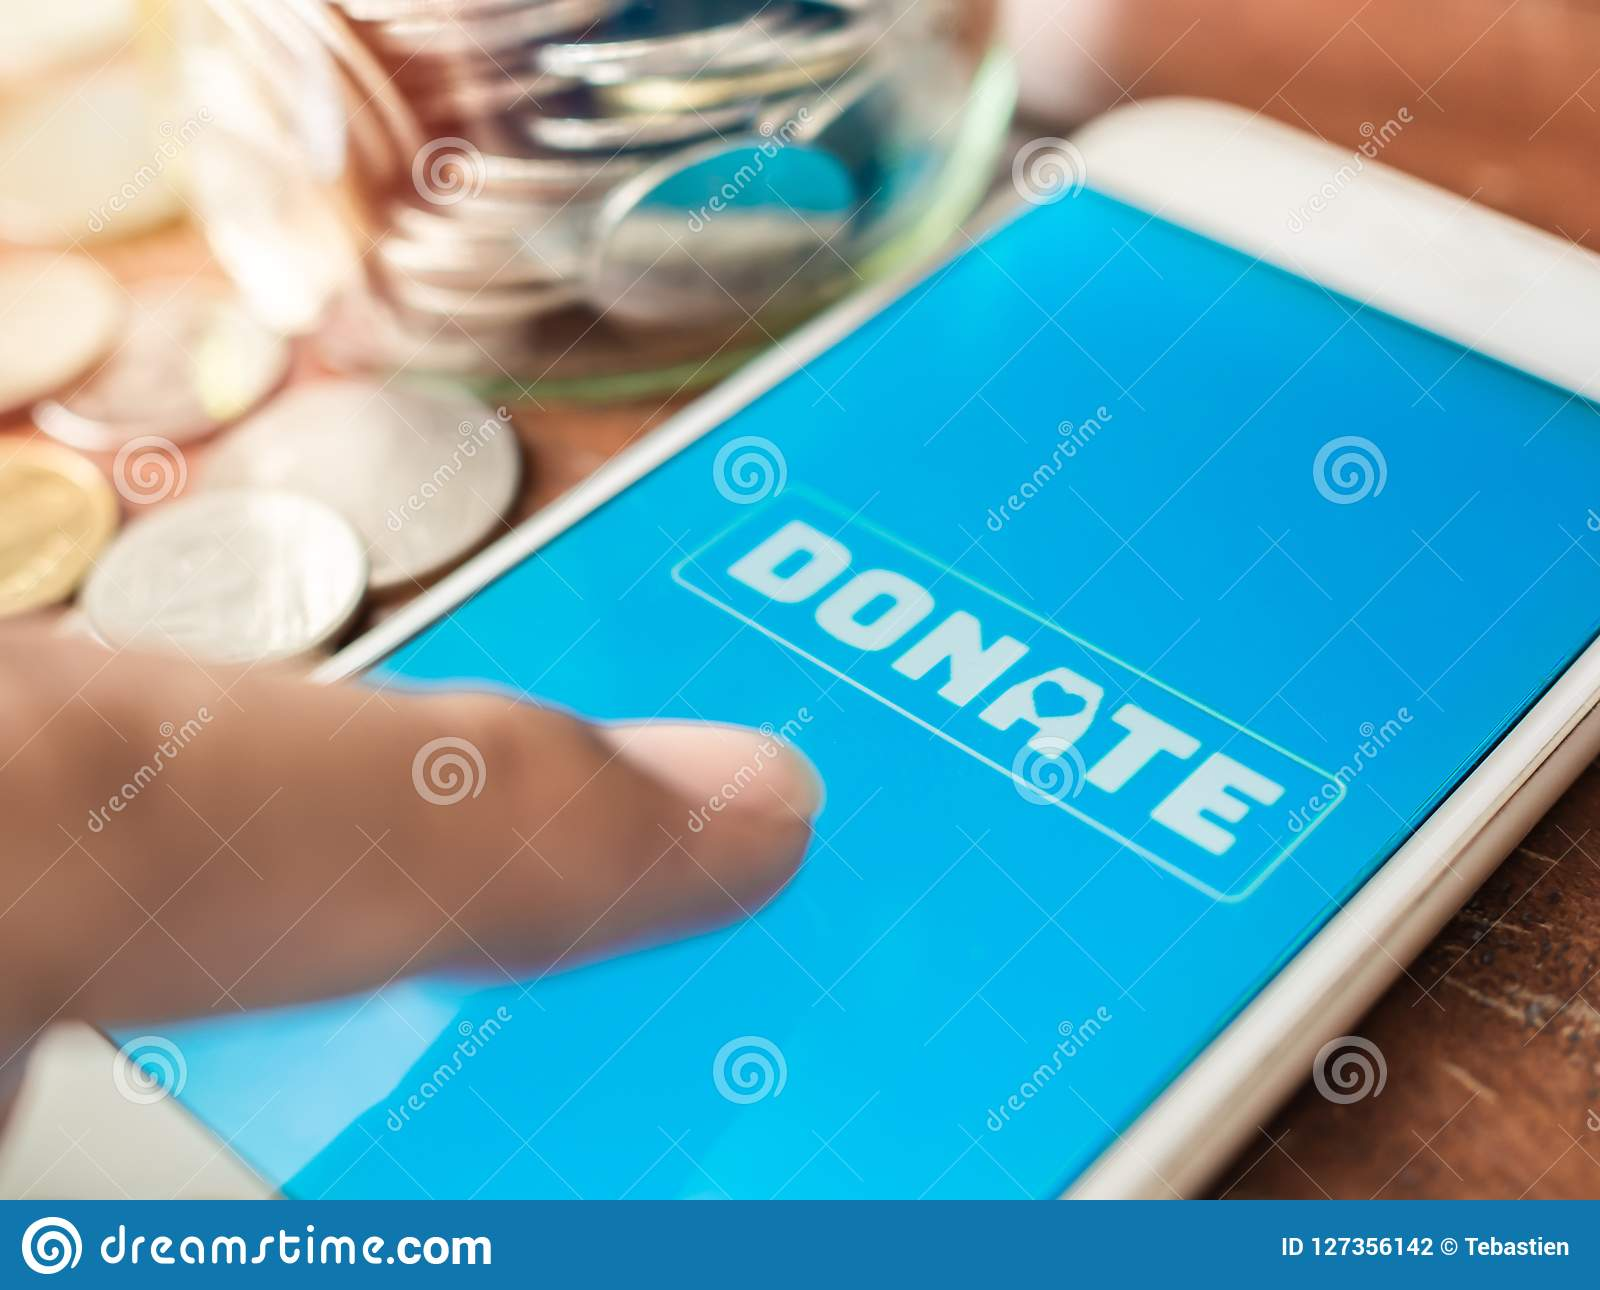 Donation money online by smart phone